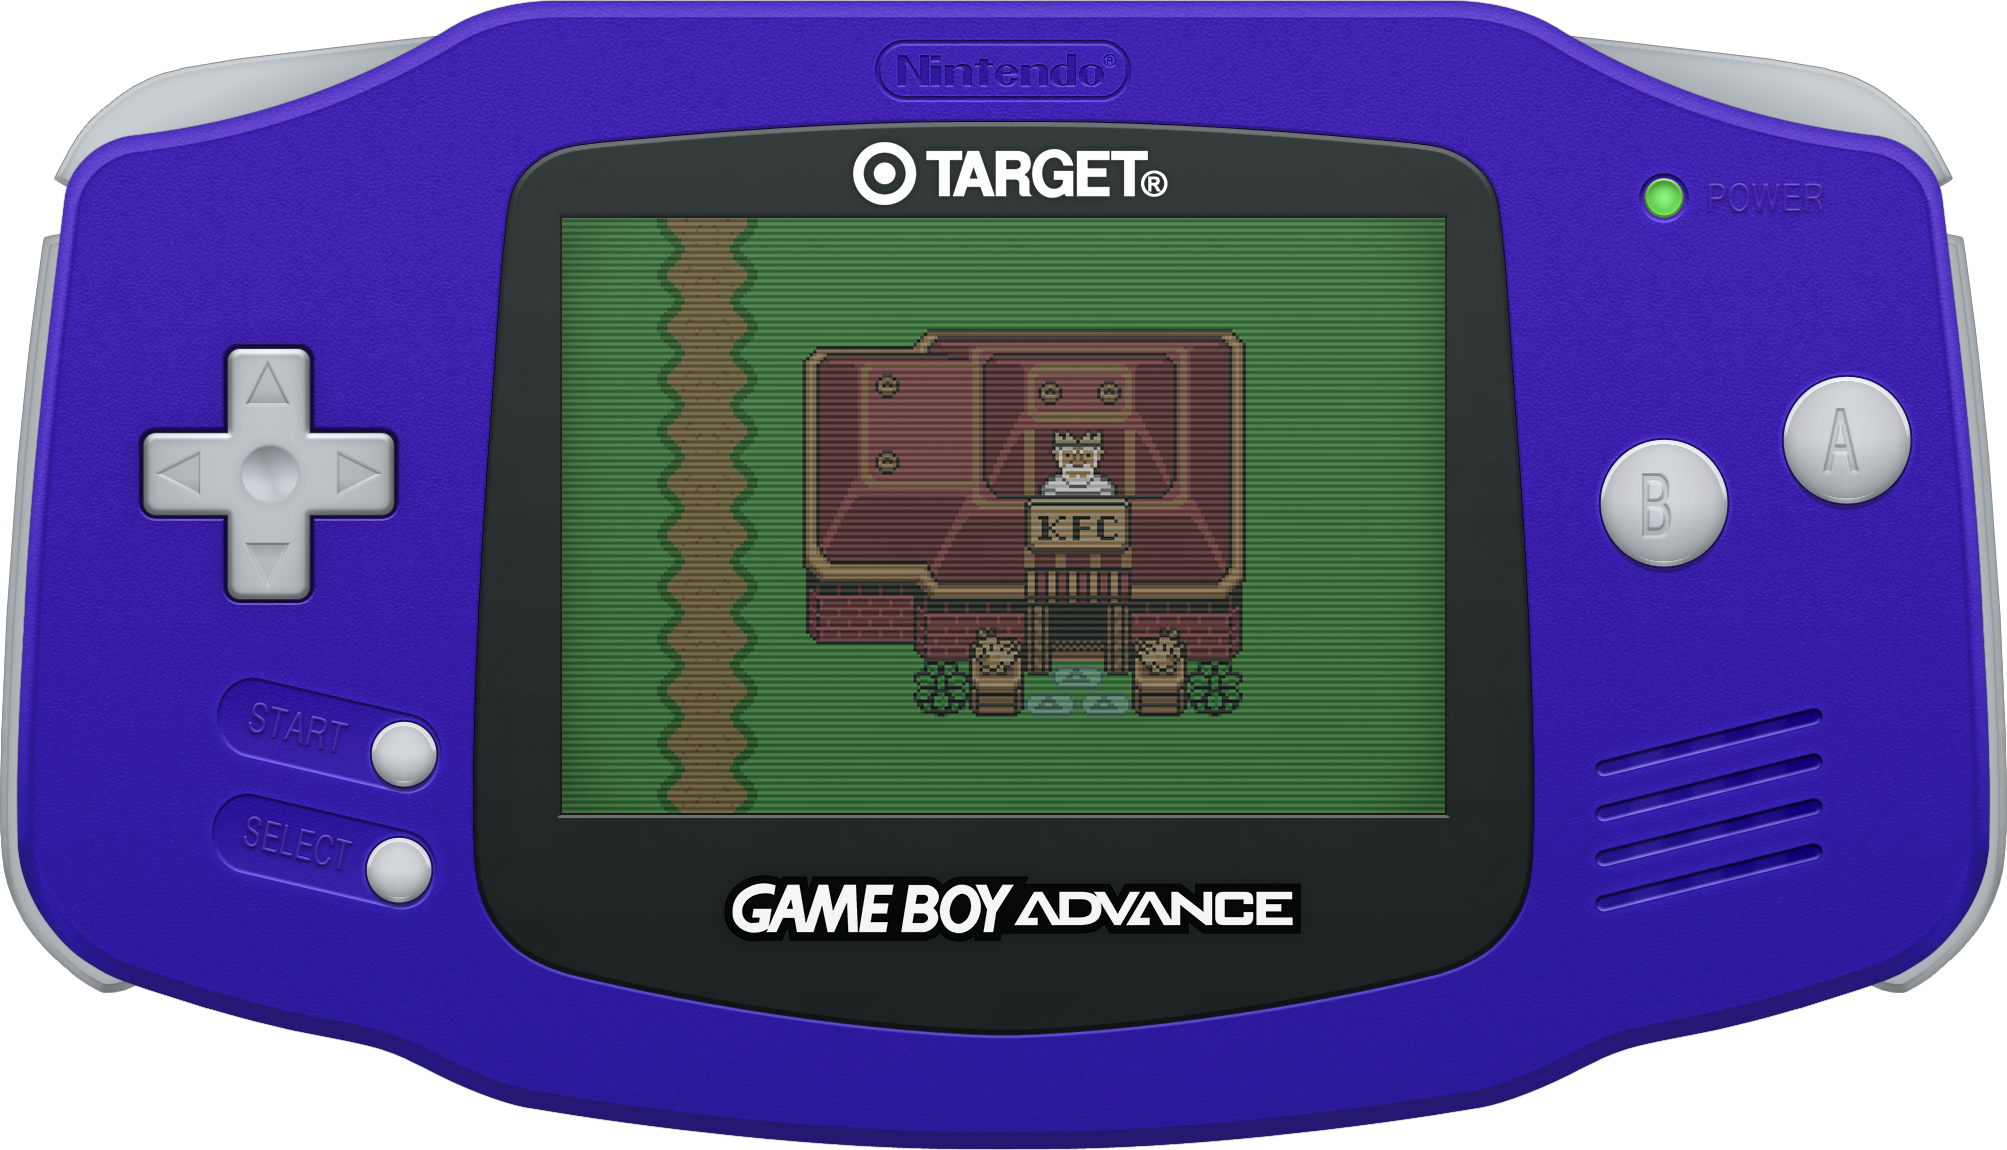 Gameboy color and advance rpg games - Game Color Boy Gameboy Color And Advance Rpg Games Nintendo Game Boy Advance Target Grape